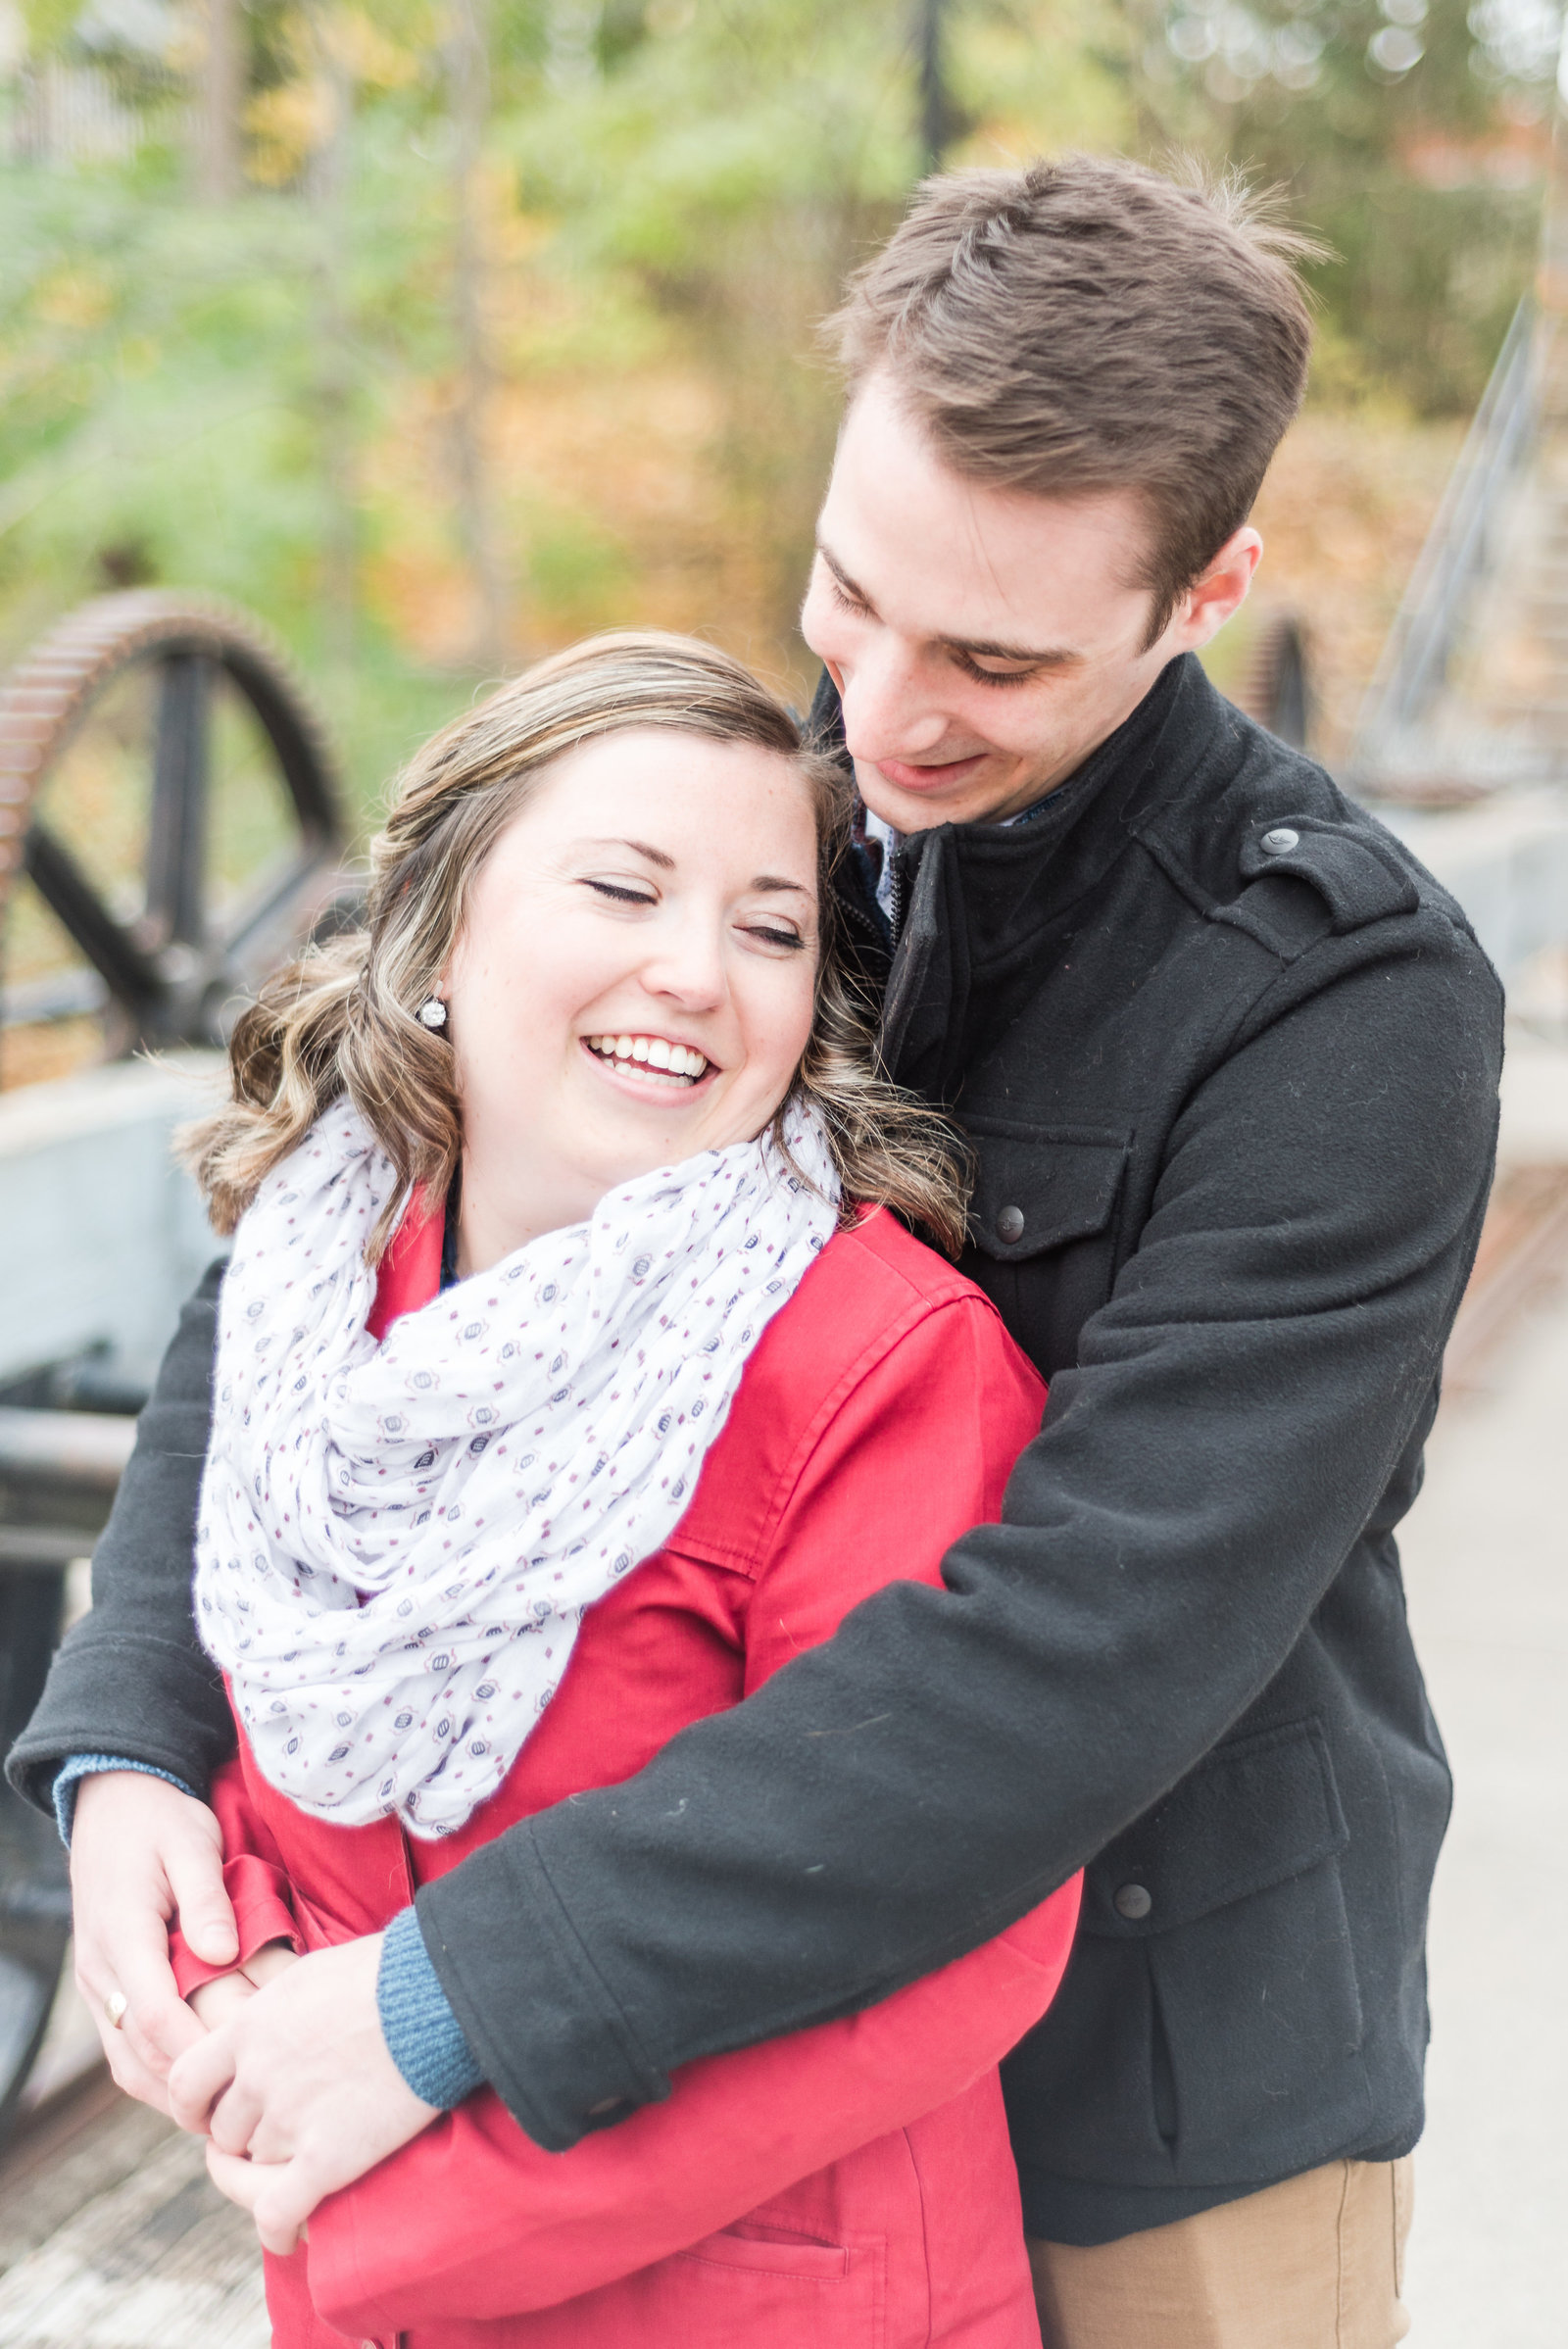 Autumn-Engagement-Photos-Ottawa-164008